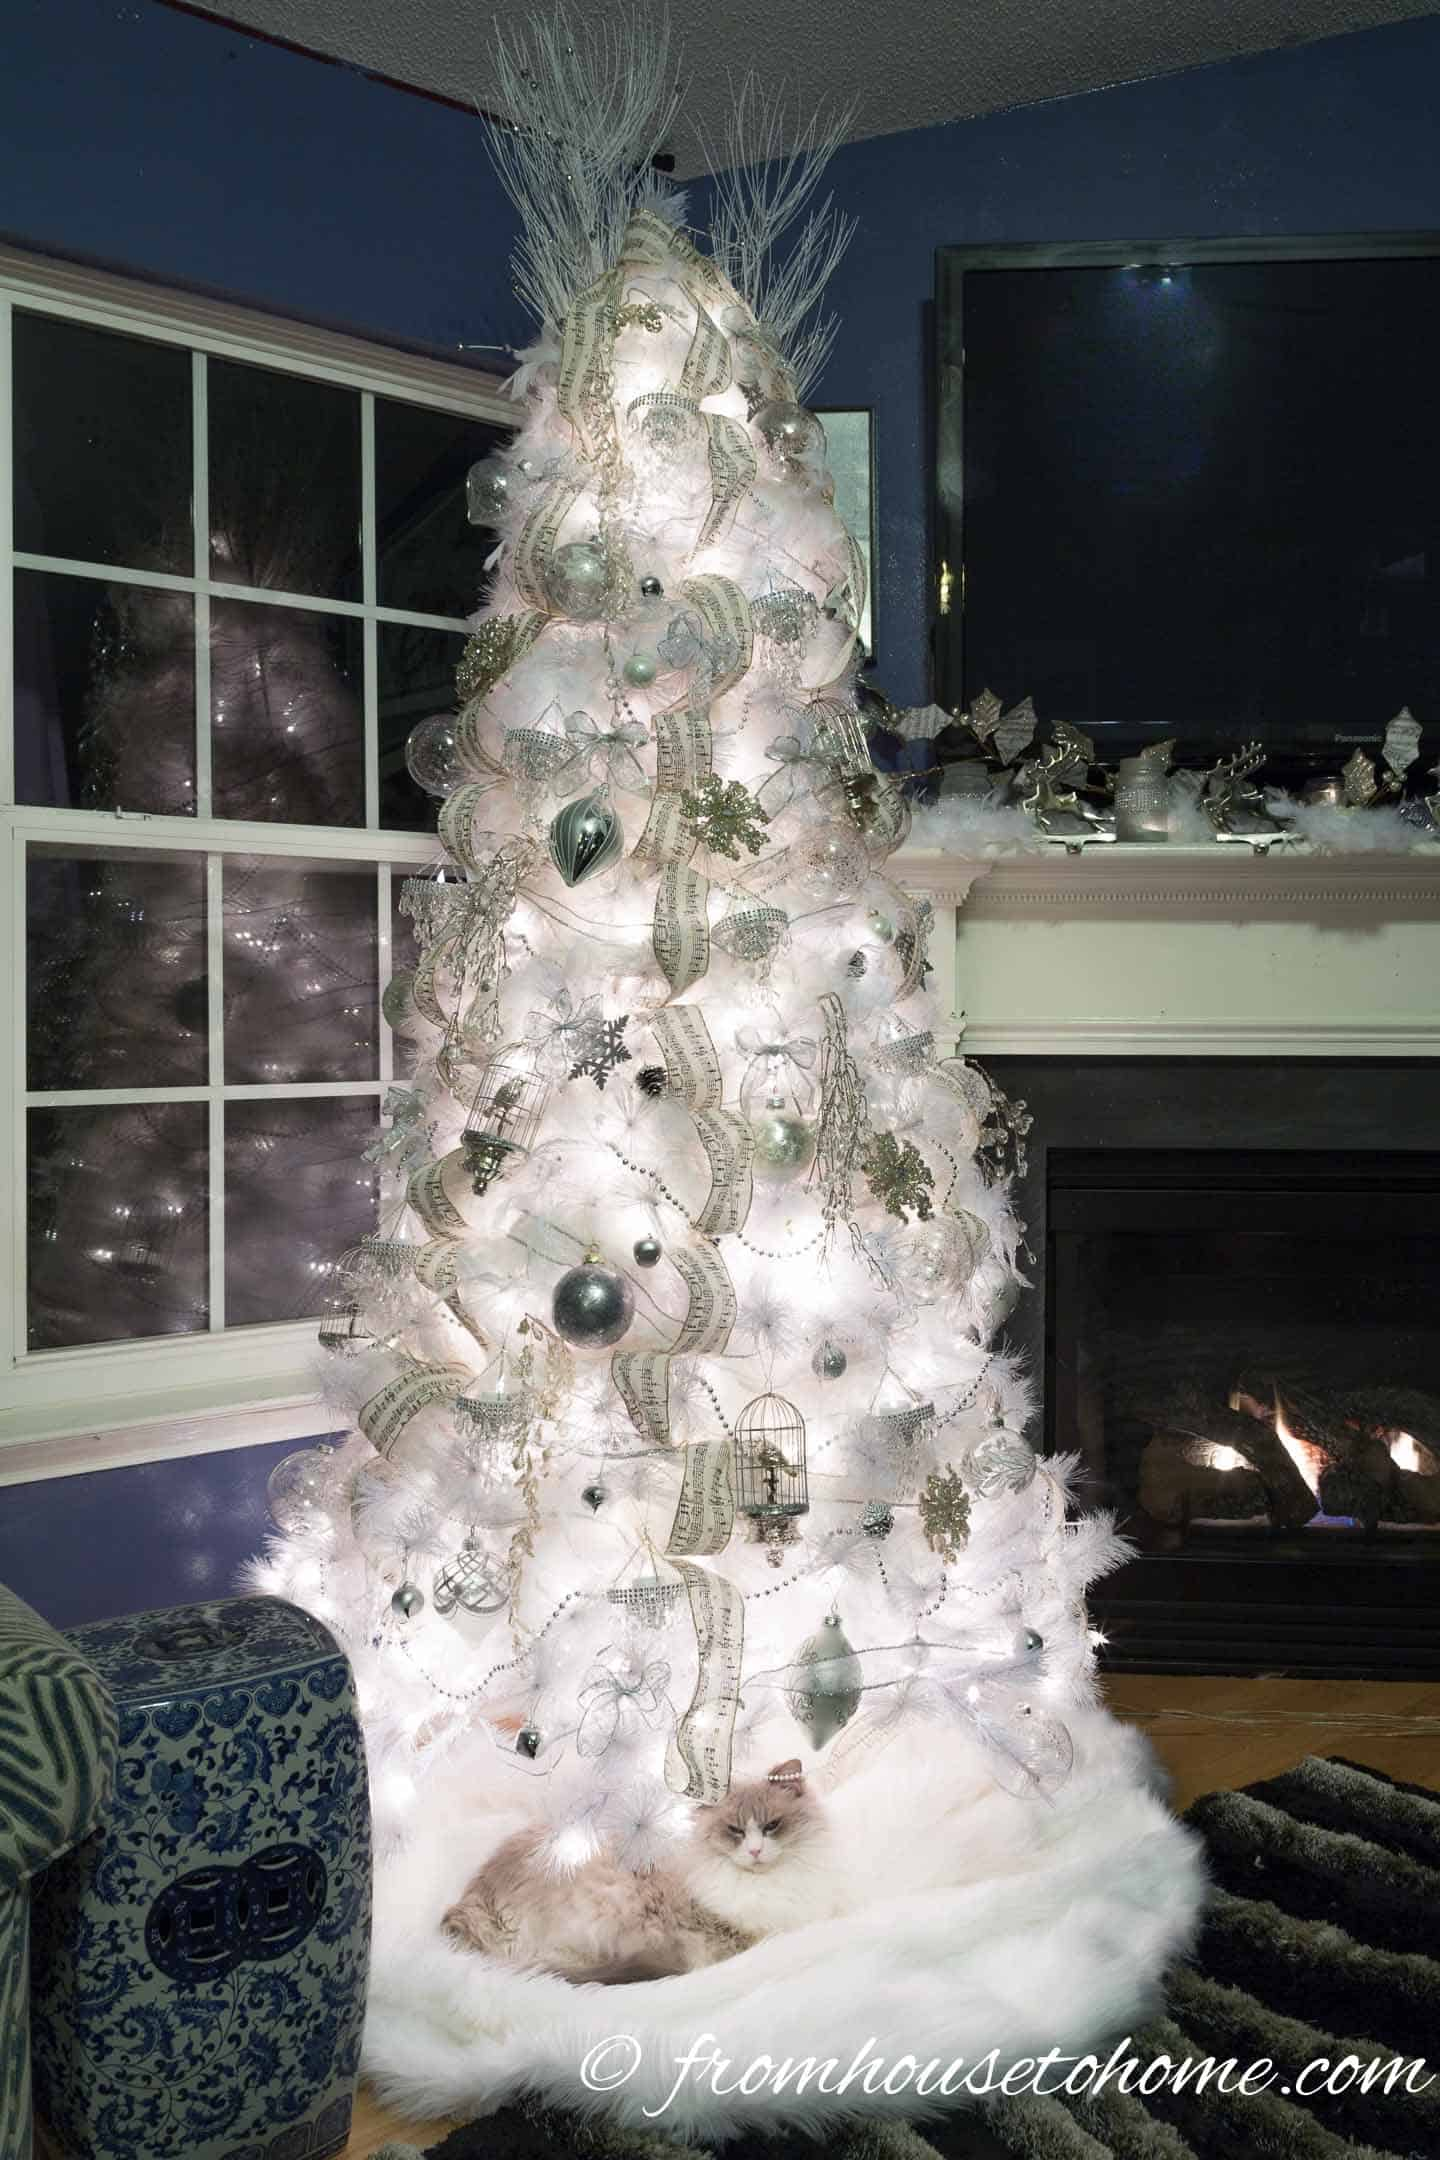 White cat under an all white Christmas tree